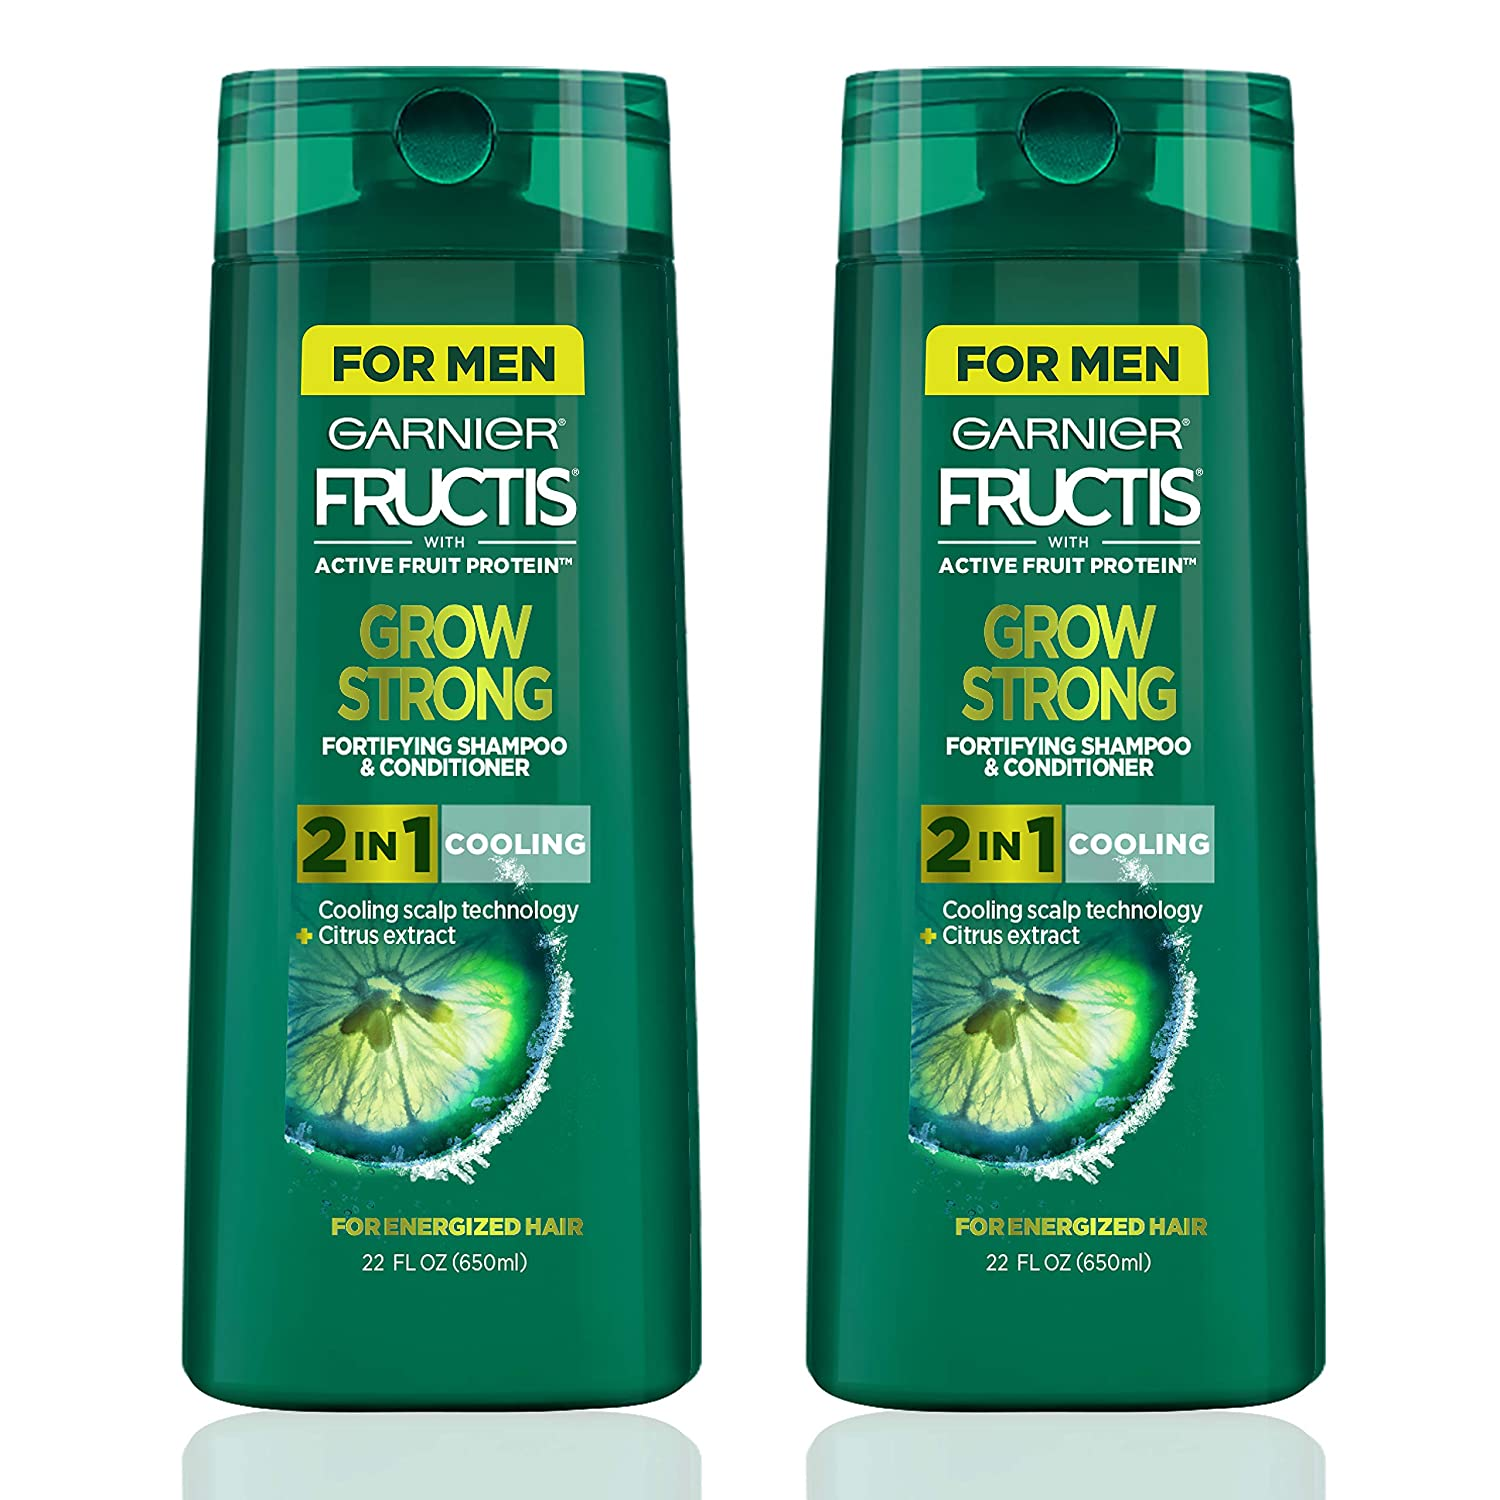 Garnier Hair Care Fructis Men's Grow Strong Cooling 2N1 Shampoo and Conditioner, Cooling Scalp Technology & Formulated with Citrus Extract, Refreshing Menthol for Energized Hair, 22 Fl Oz, 2 Count